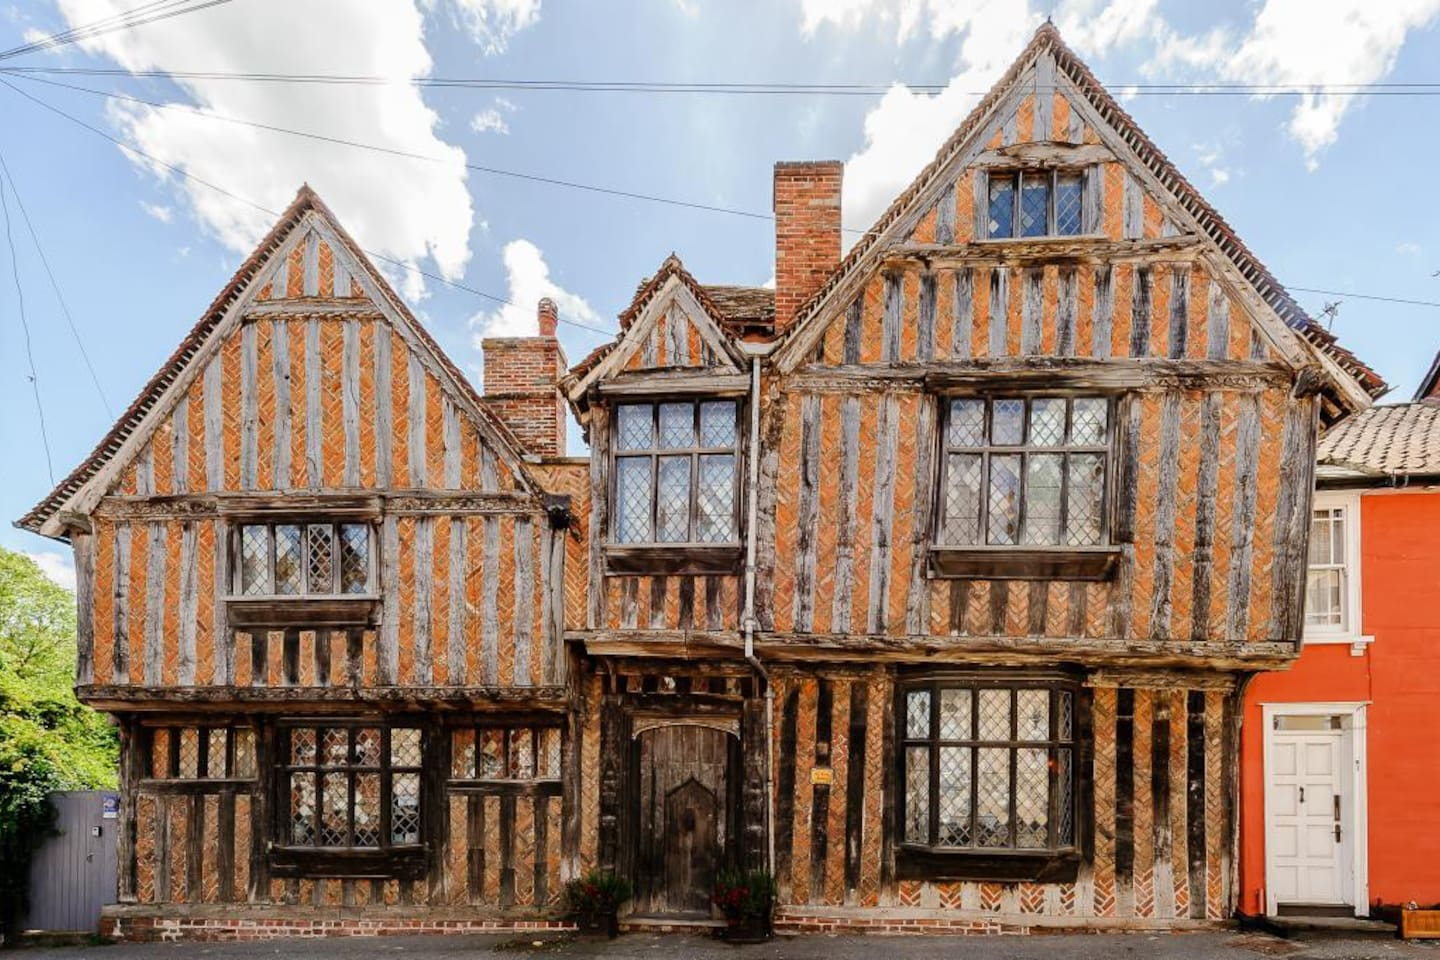 De Vere House, Lavenham, Suffolk (Harry Potter's House)